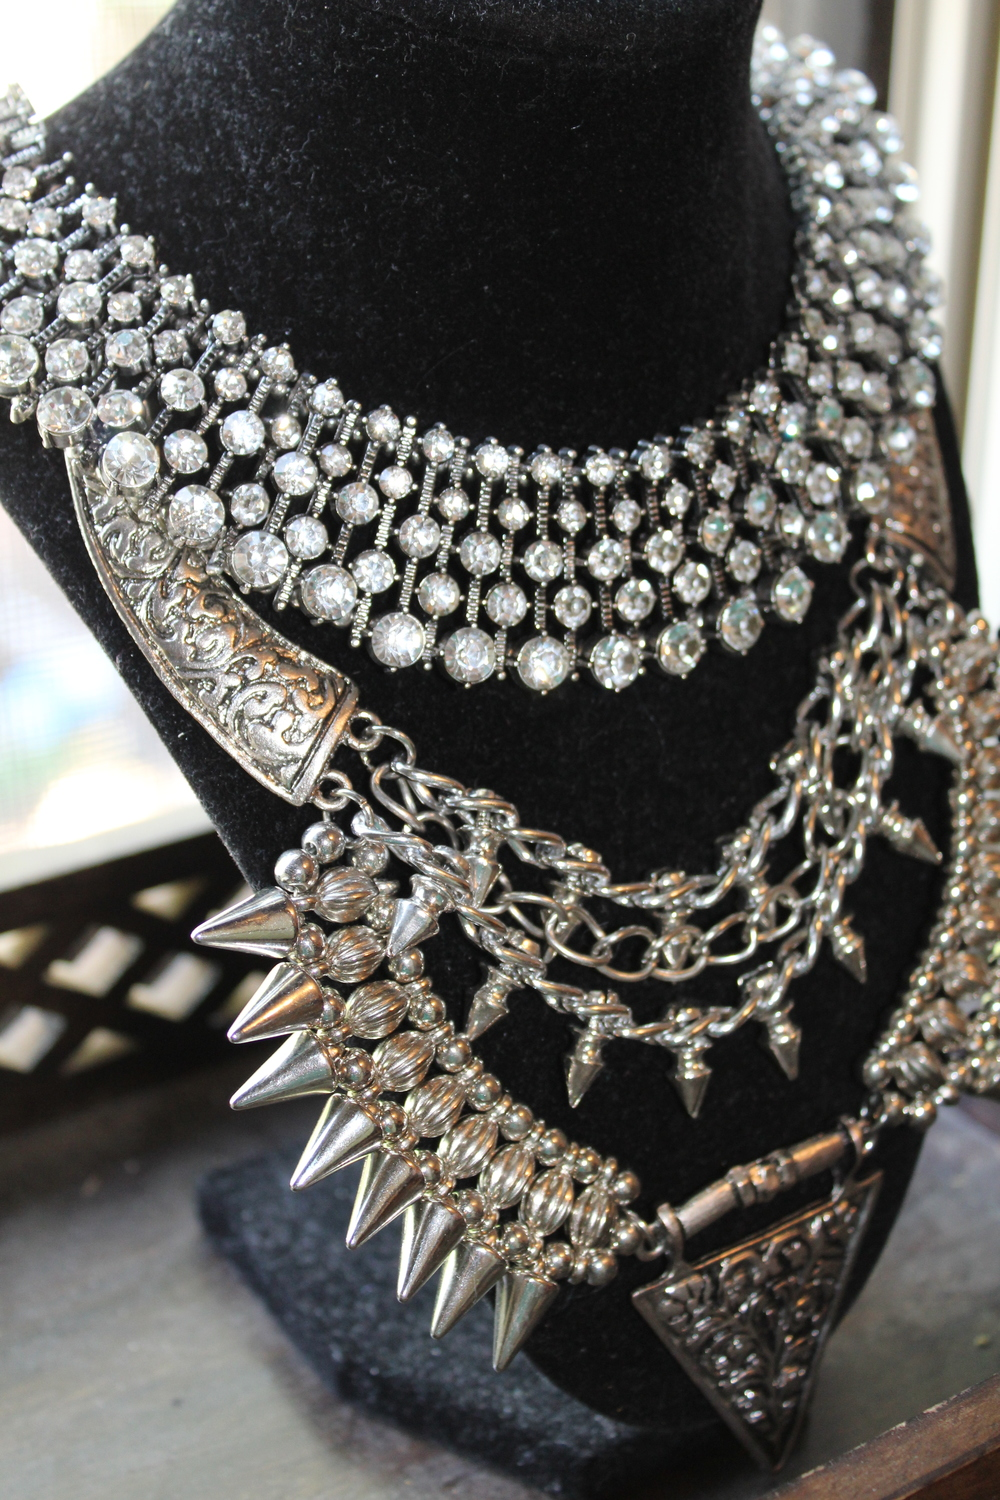 A close up look at the deep intricacy details of the necklace is fabulously phenomenal.